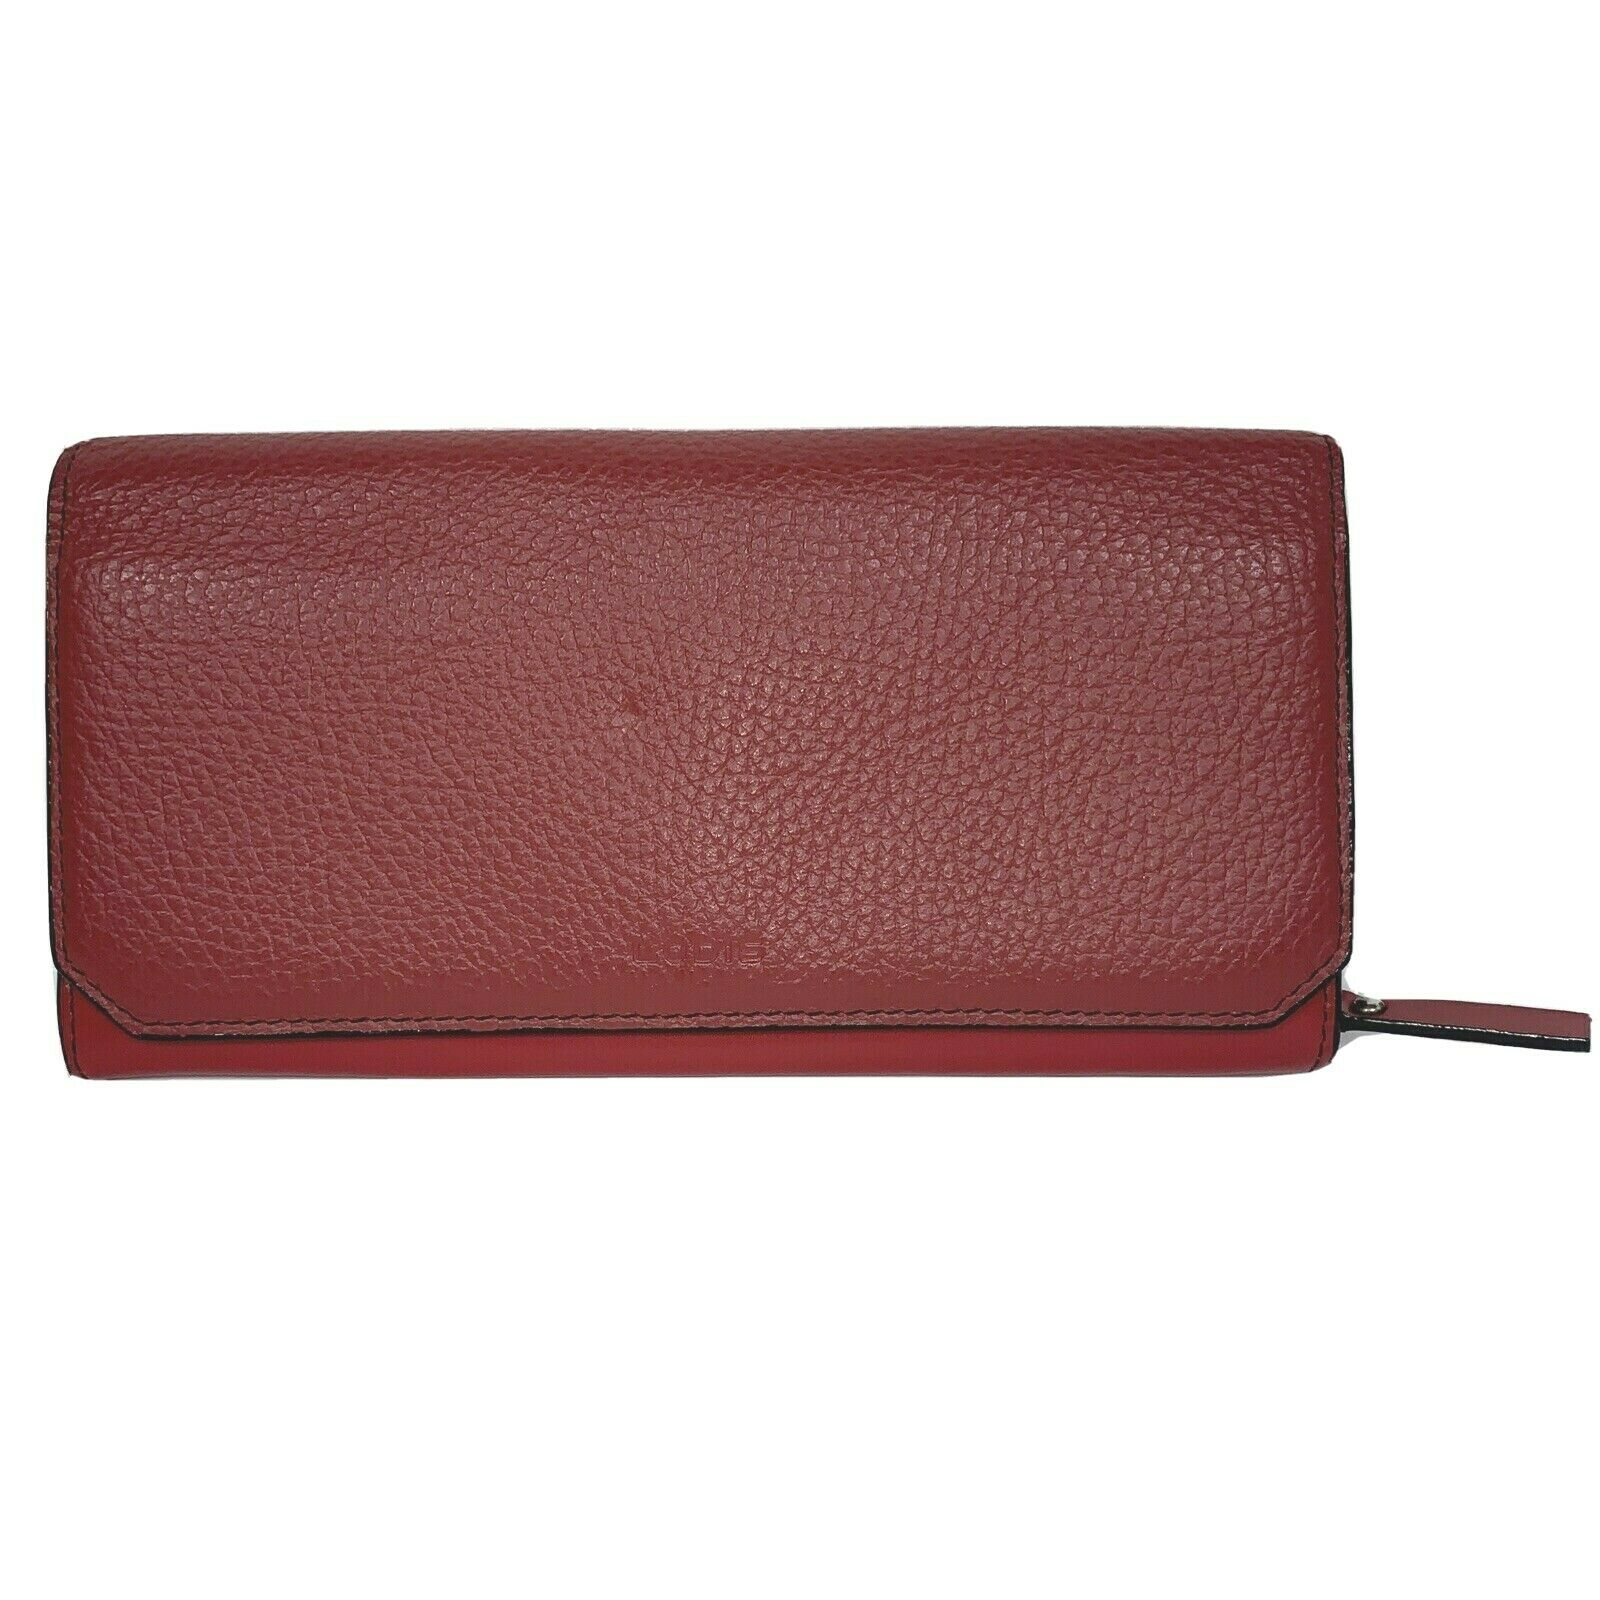 Lodis Wallet Red Genuine Leather Pebbled Envelope Checkbook Wallet 7.5 x 4 x .5